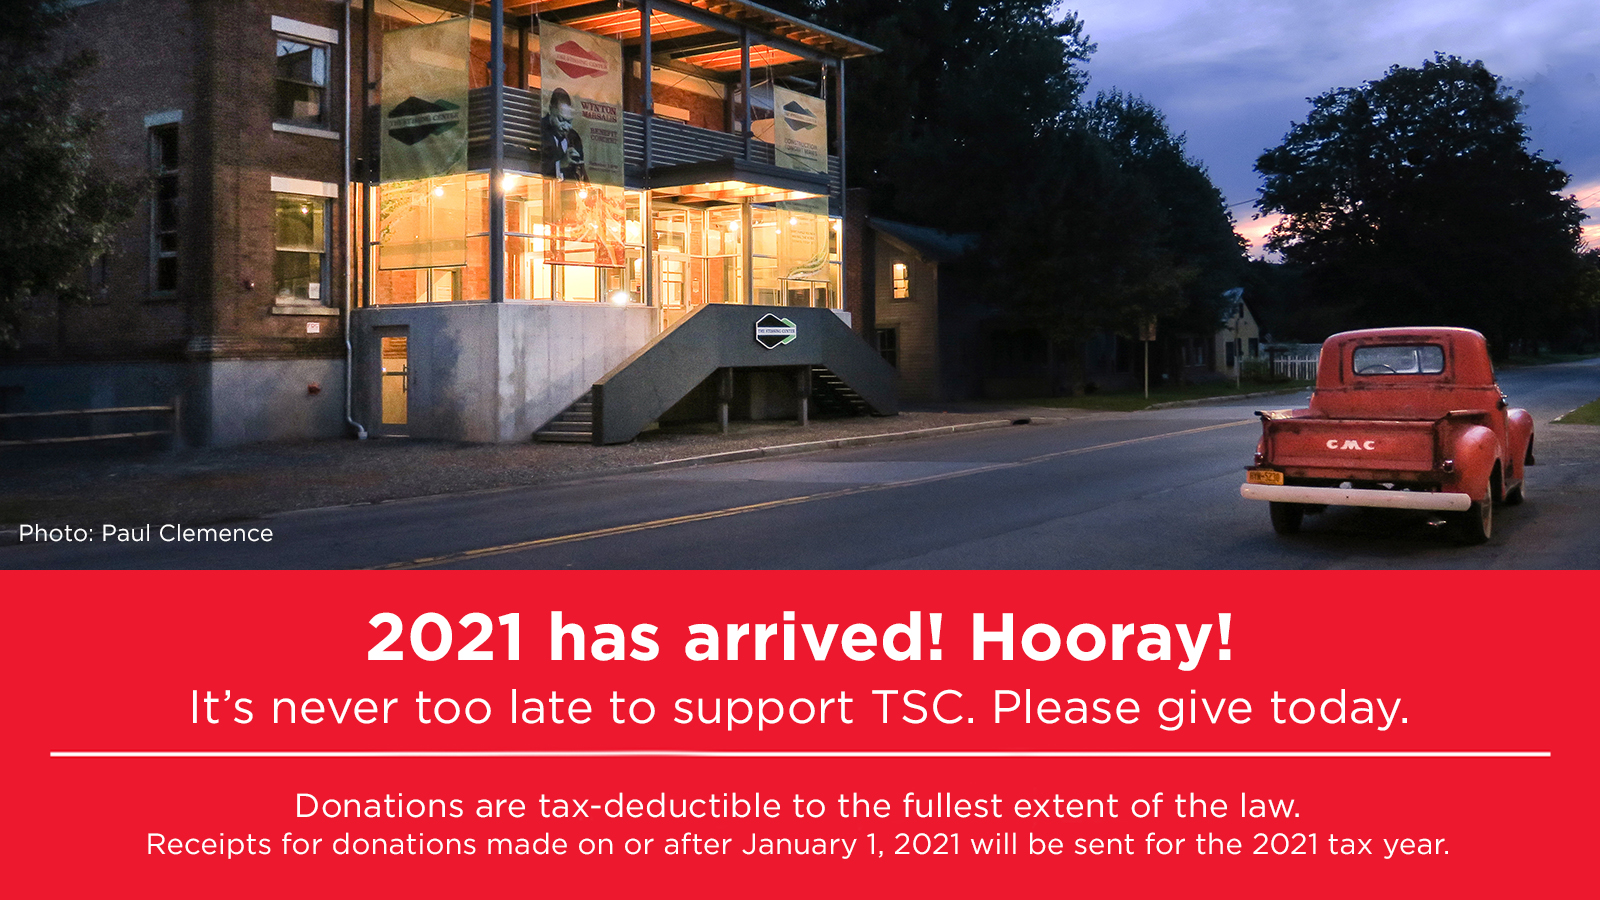 It's never too late  to support  TSC. Please give today.